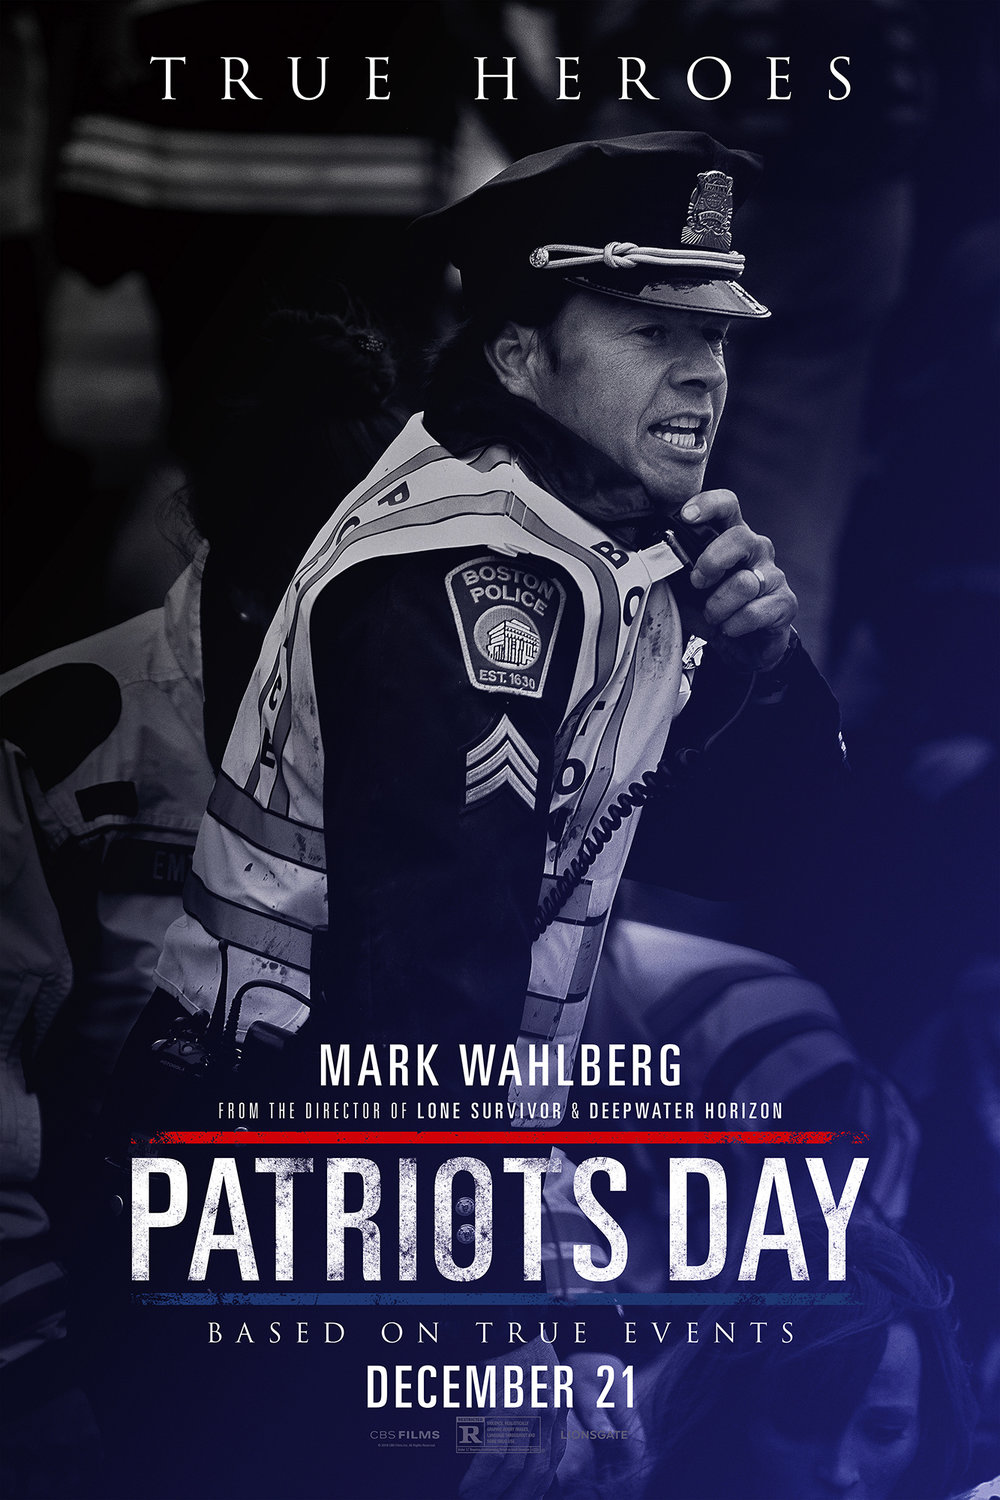 PatriotsDay_MW_48x72_WildPostings_100dpi.jpg